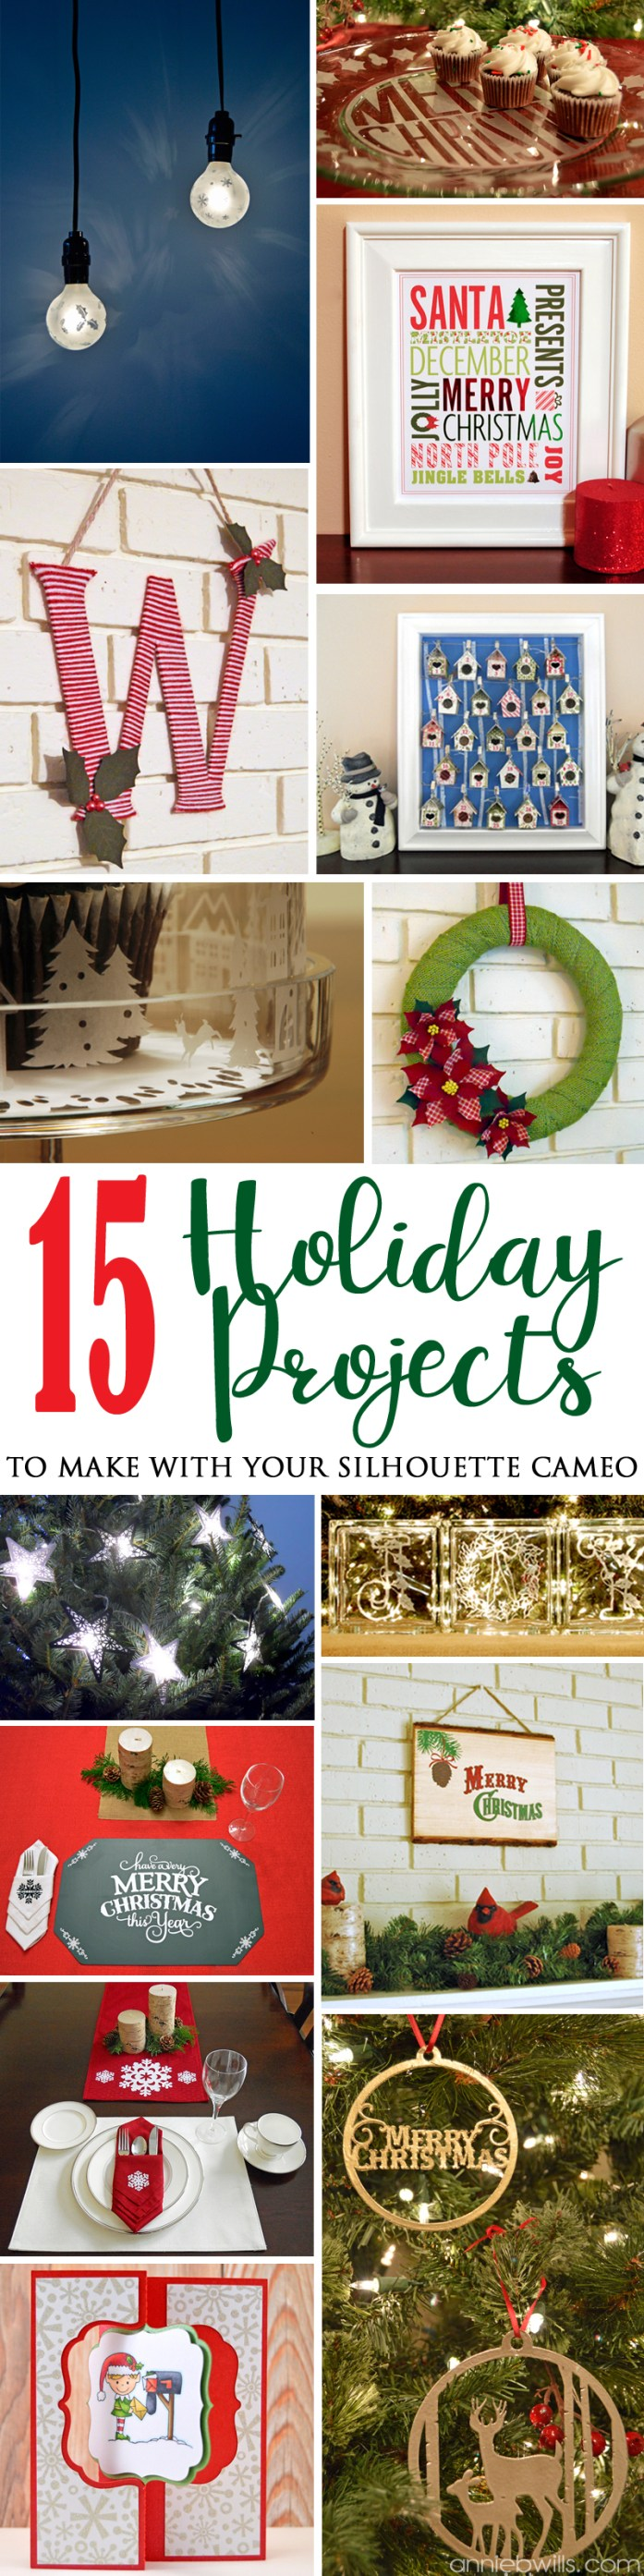 15-holiday-projects-to-make-with-your-silhouette-cameo-by-annie-williams